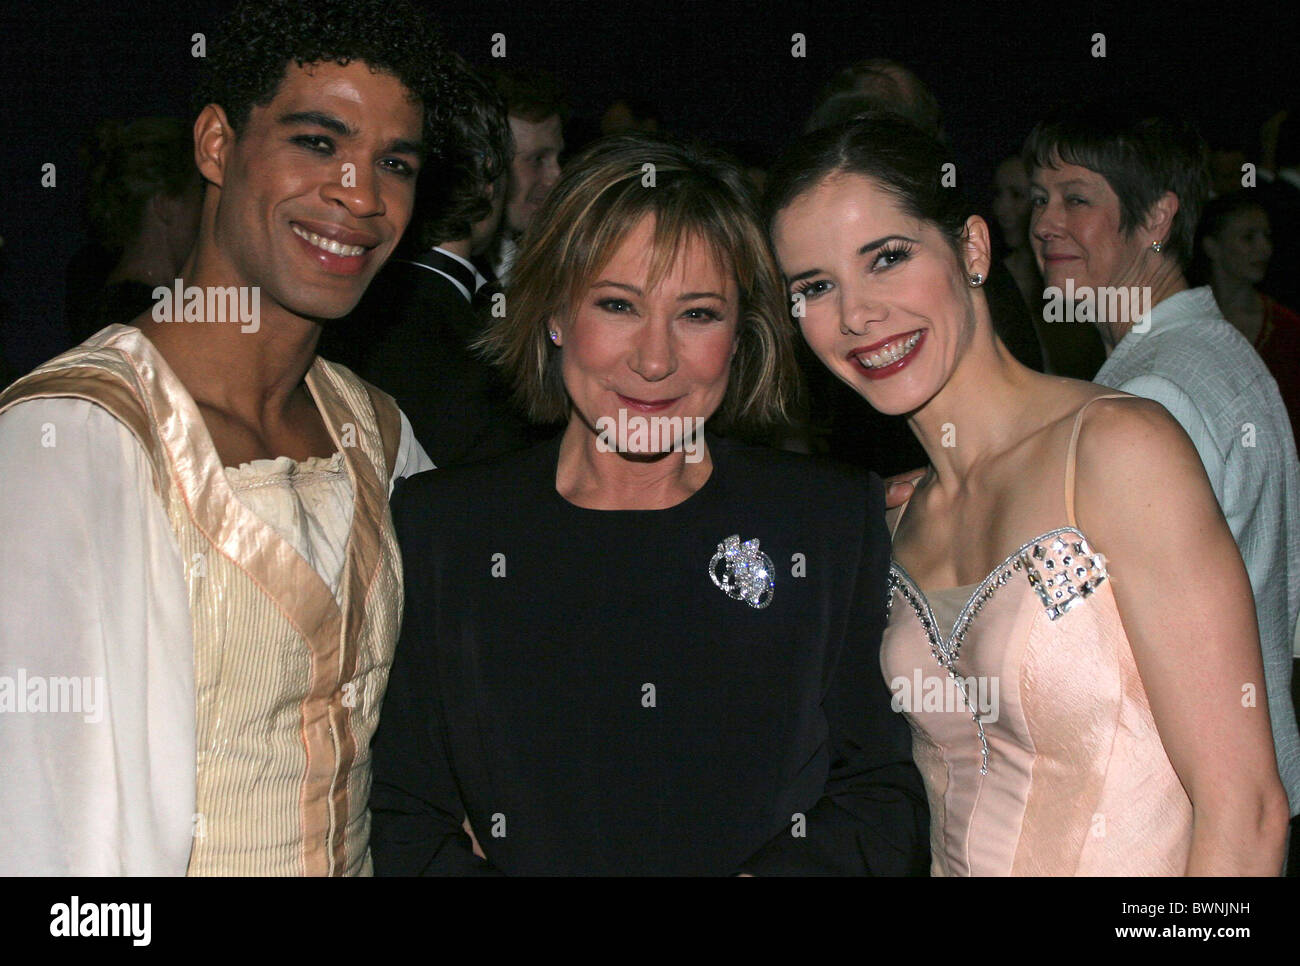 Darcey Bussell Stock Photos & Darcey Bussell Stock Images